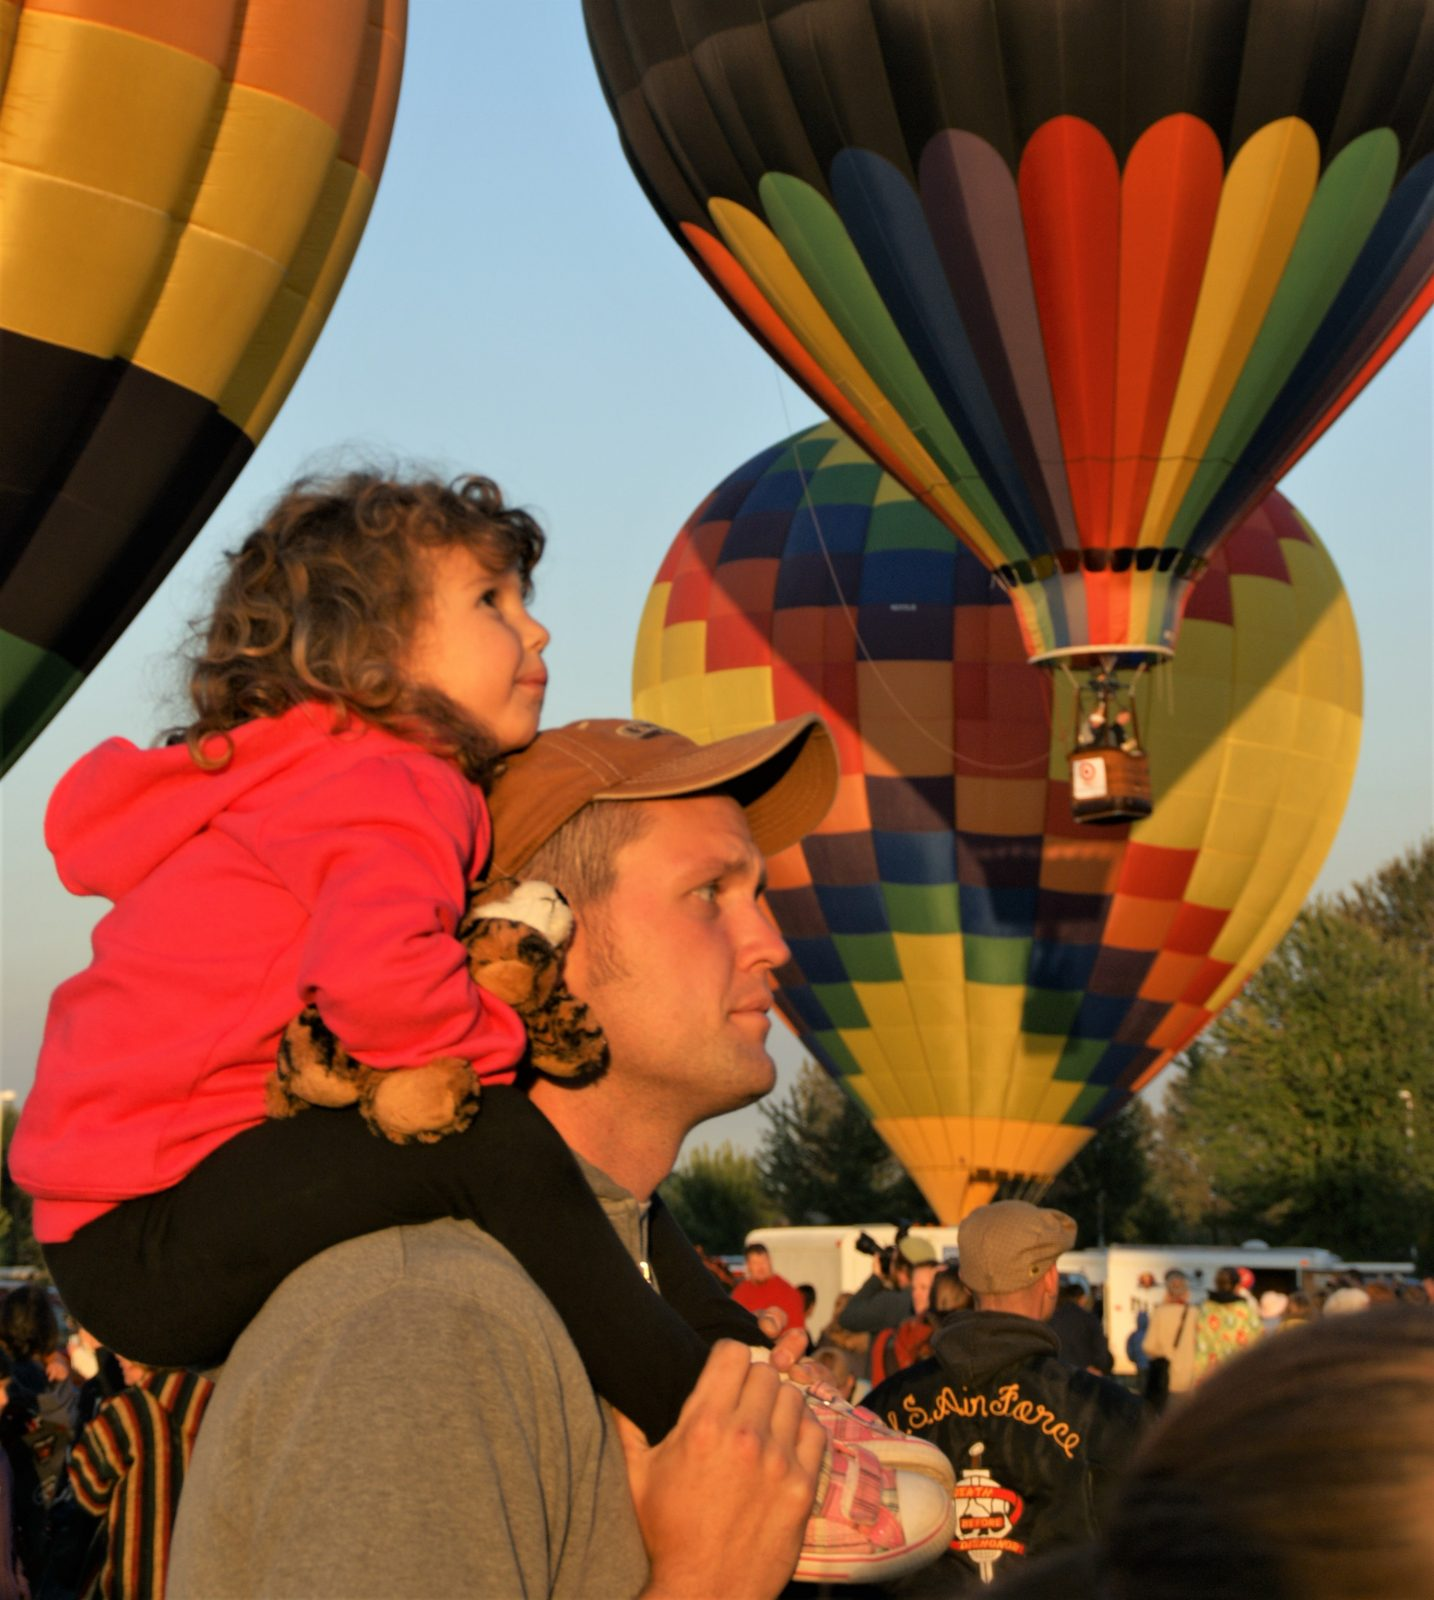 Photo little girl on man's shoulders hot air balloons in background